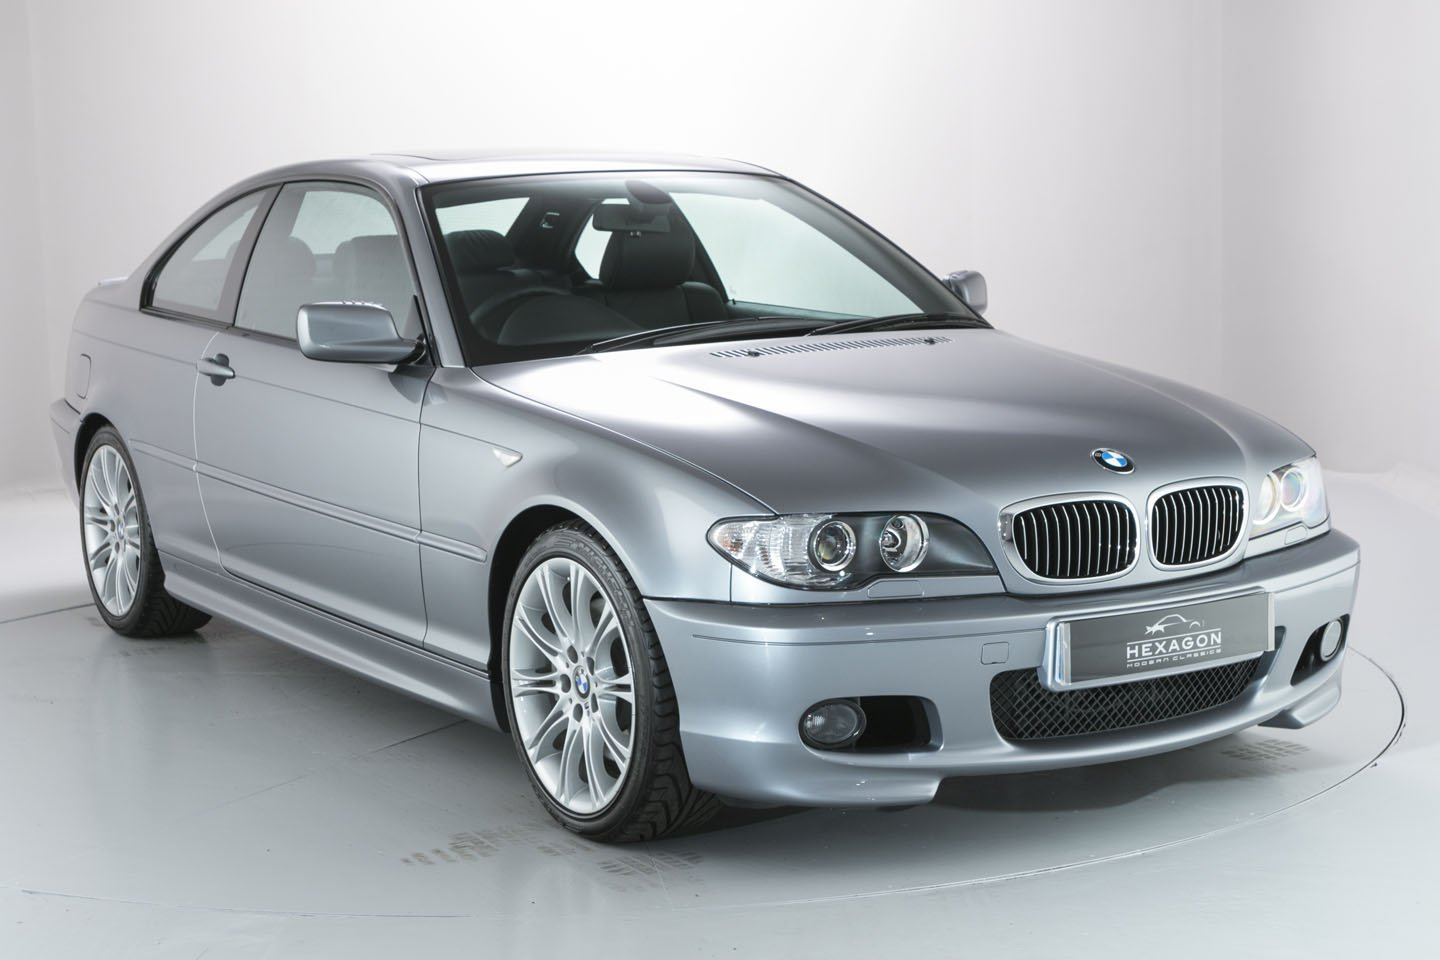 Tips on What to Look for when Buying a BMW E46